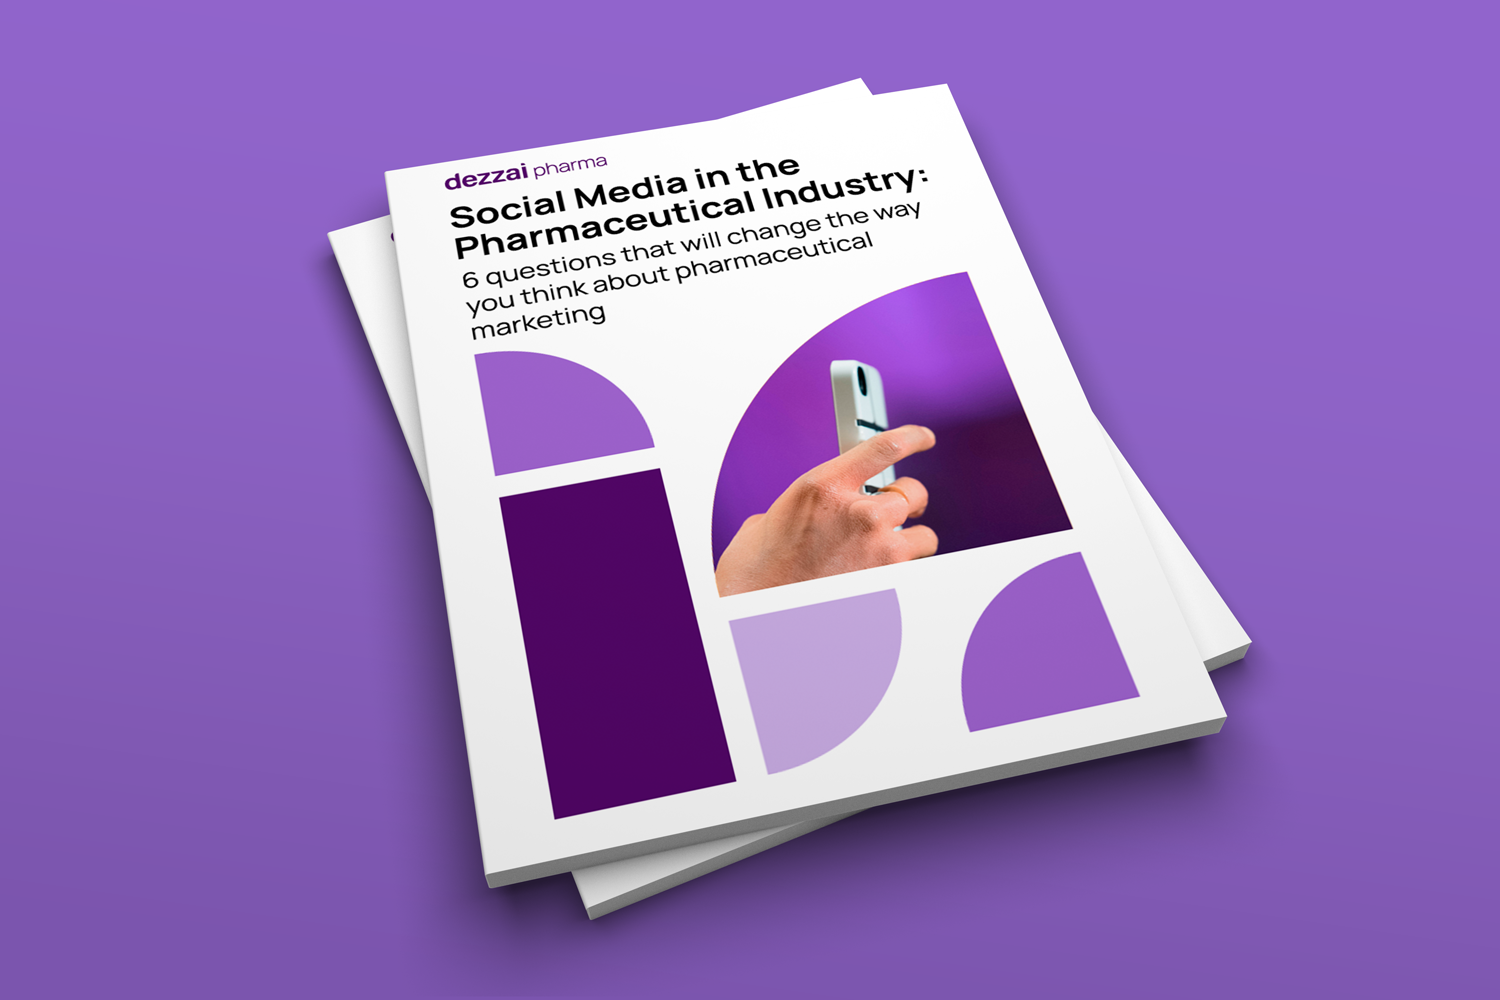 Free eBook: Social media in the pharmaceutical industry